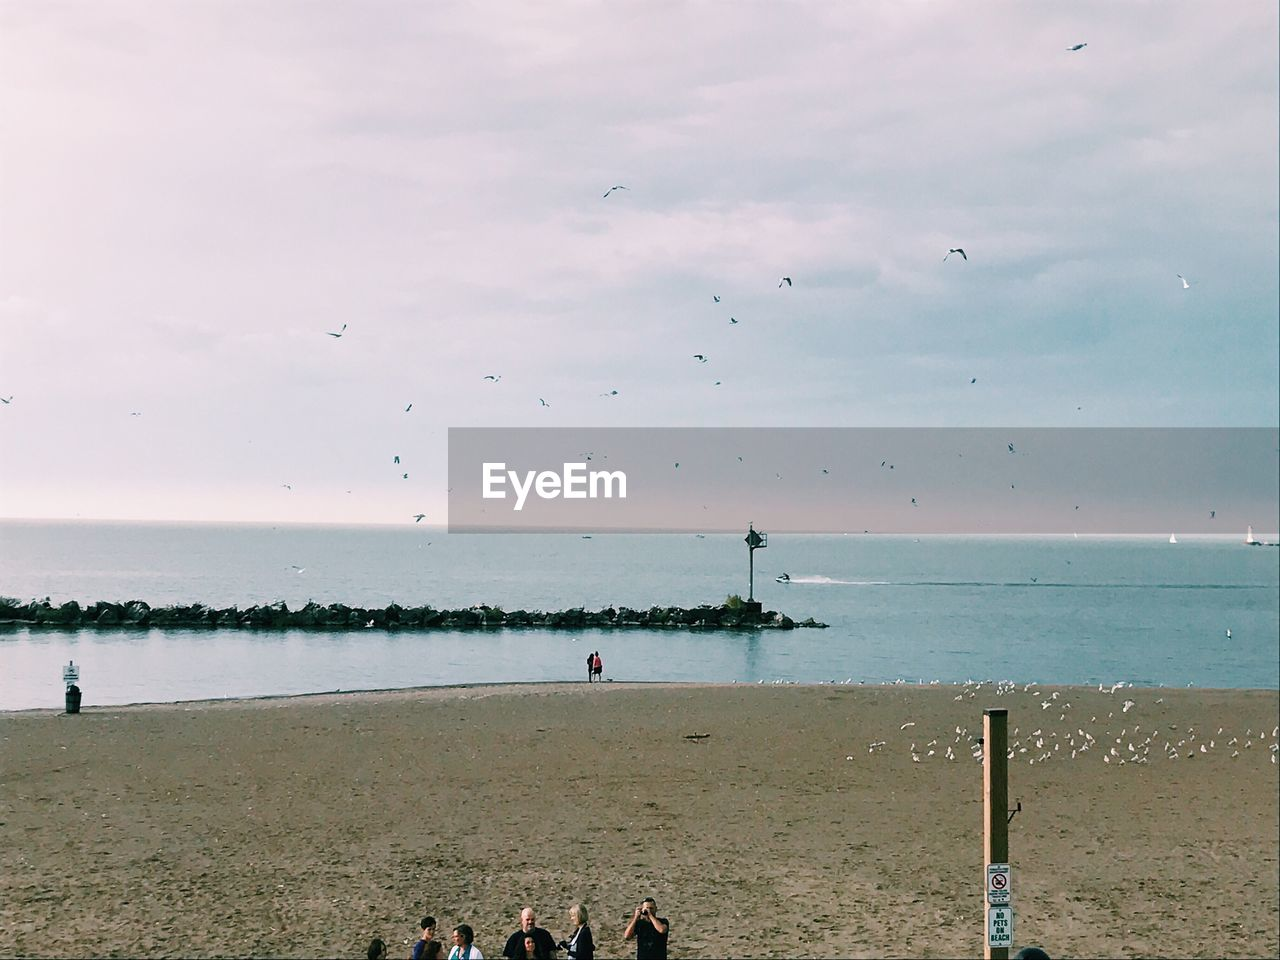 water, sea, group of people, beach, sky, land, real people, horizon over water, horizon, nature, cloud - sky, crowd, men, large group of people, scenics - nature, vacations, leisure activity, lifestyles, trip, outdoors